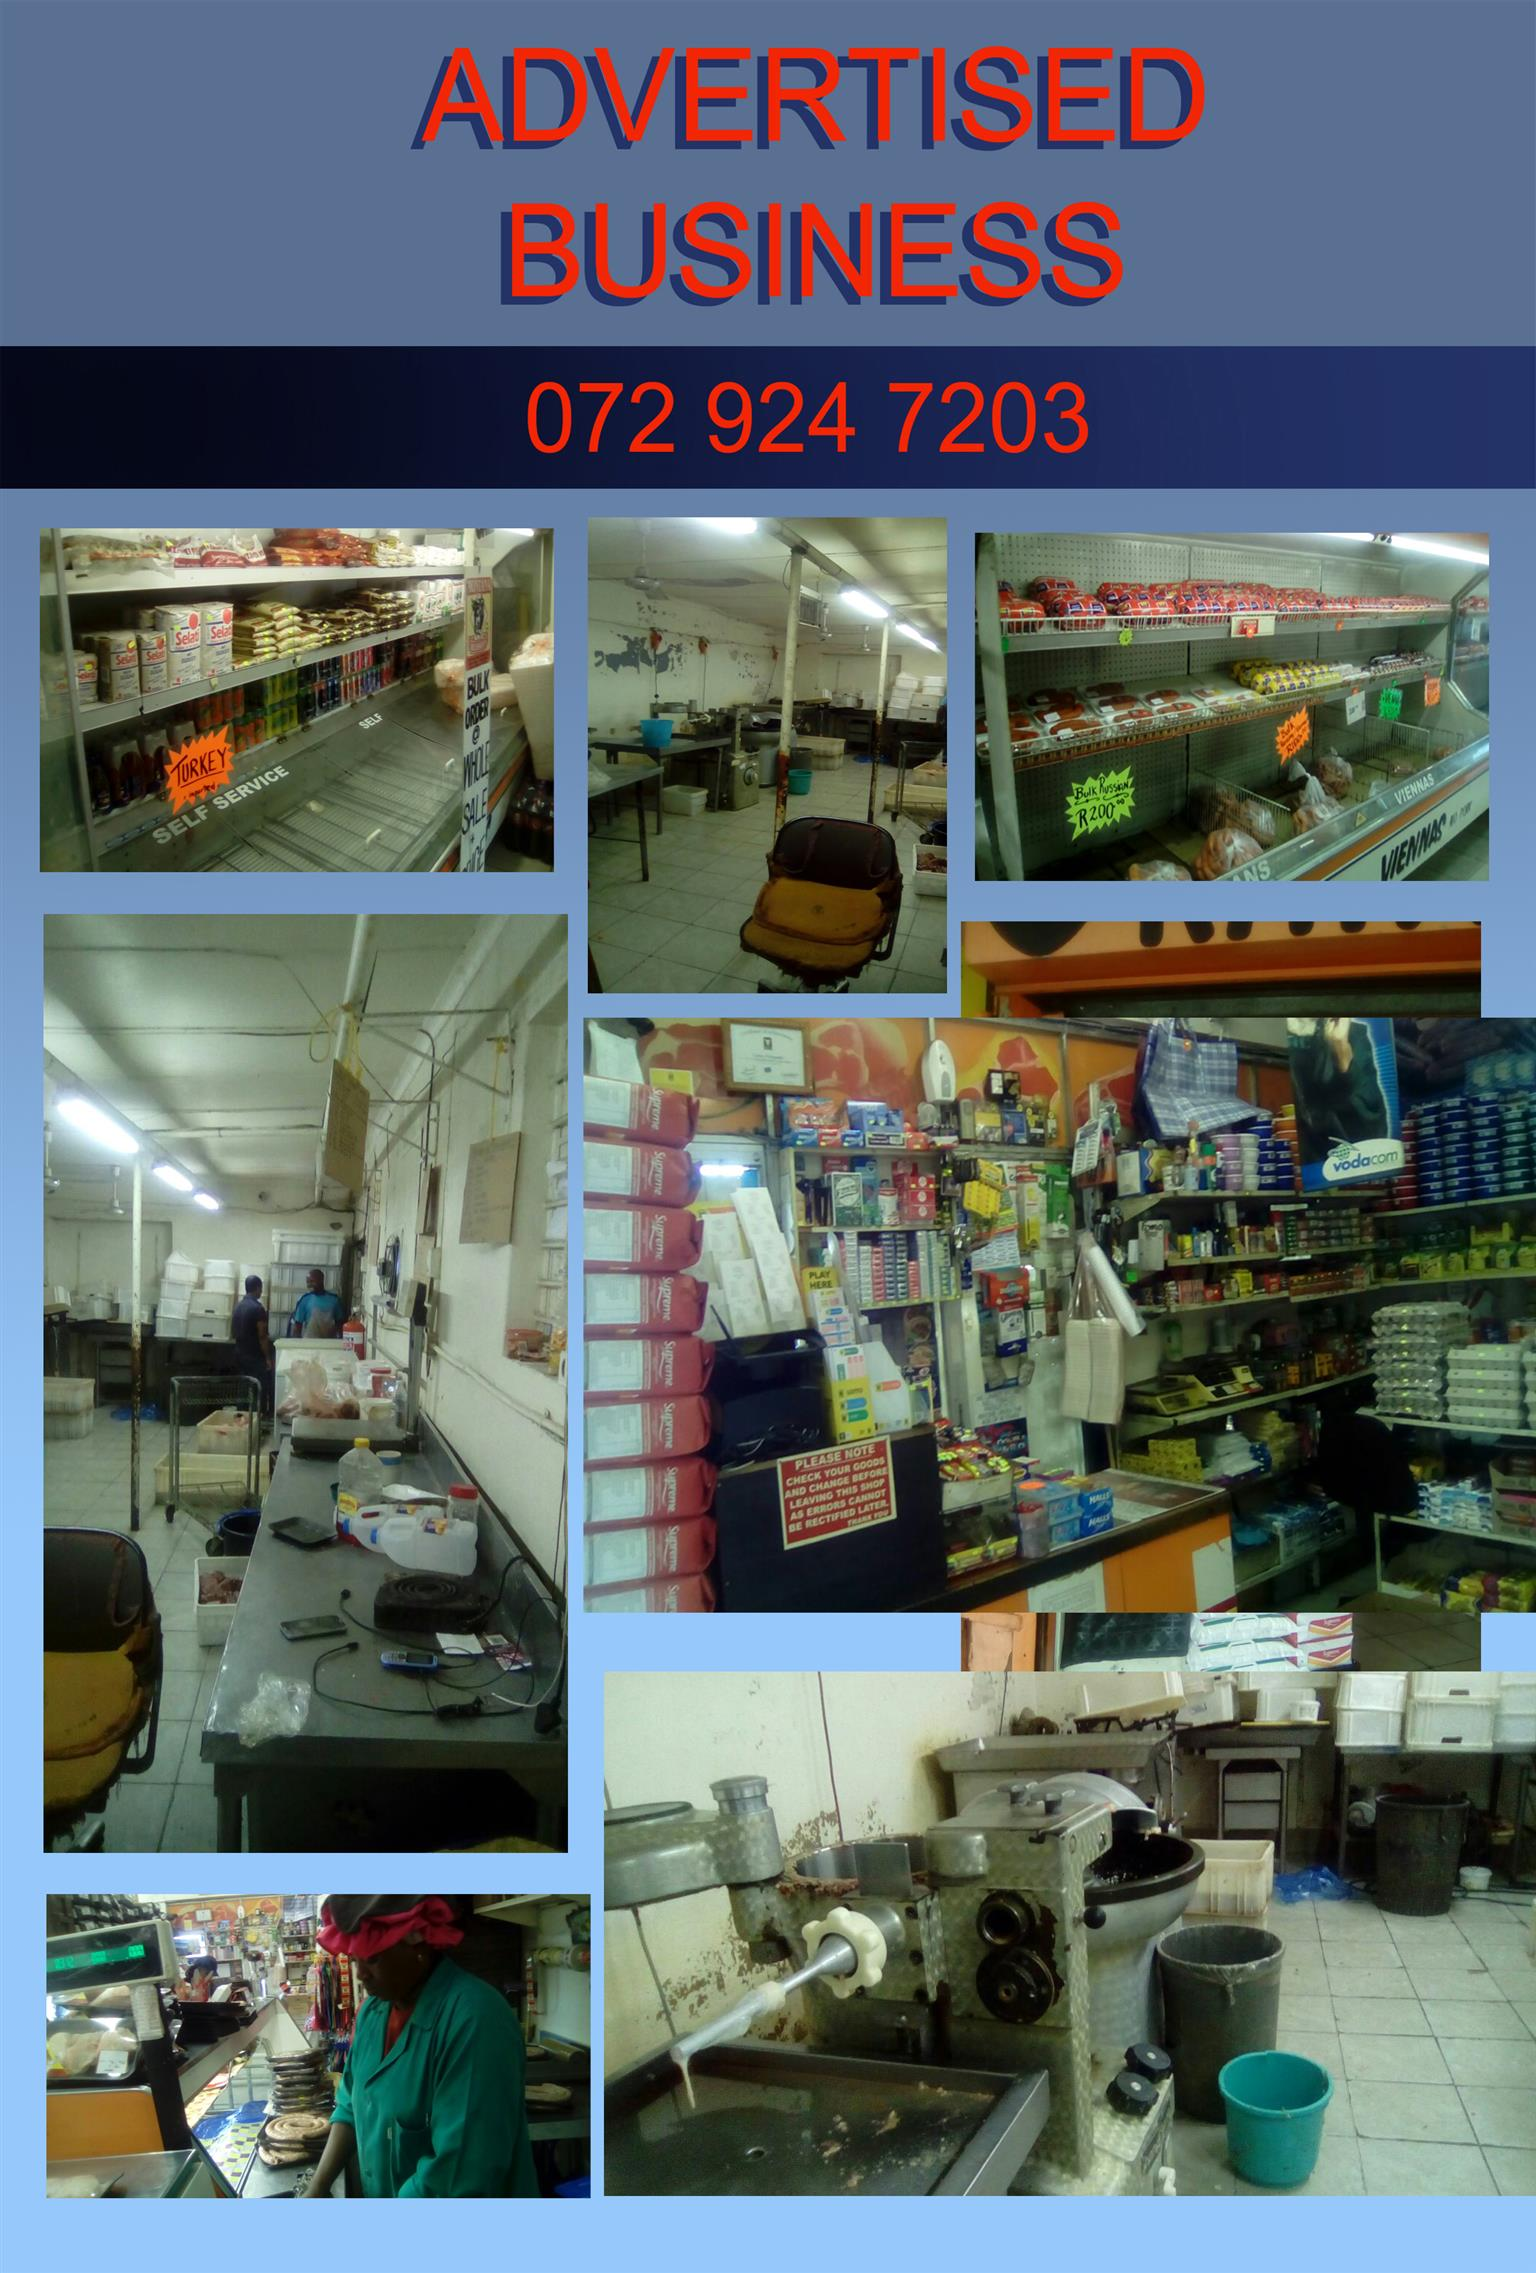 Butchery and Supermarket in Pta town for sale.